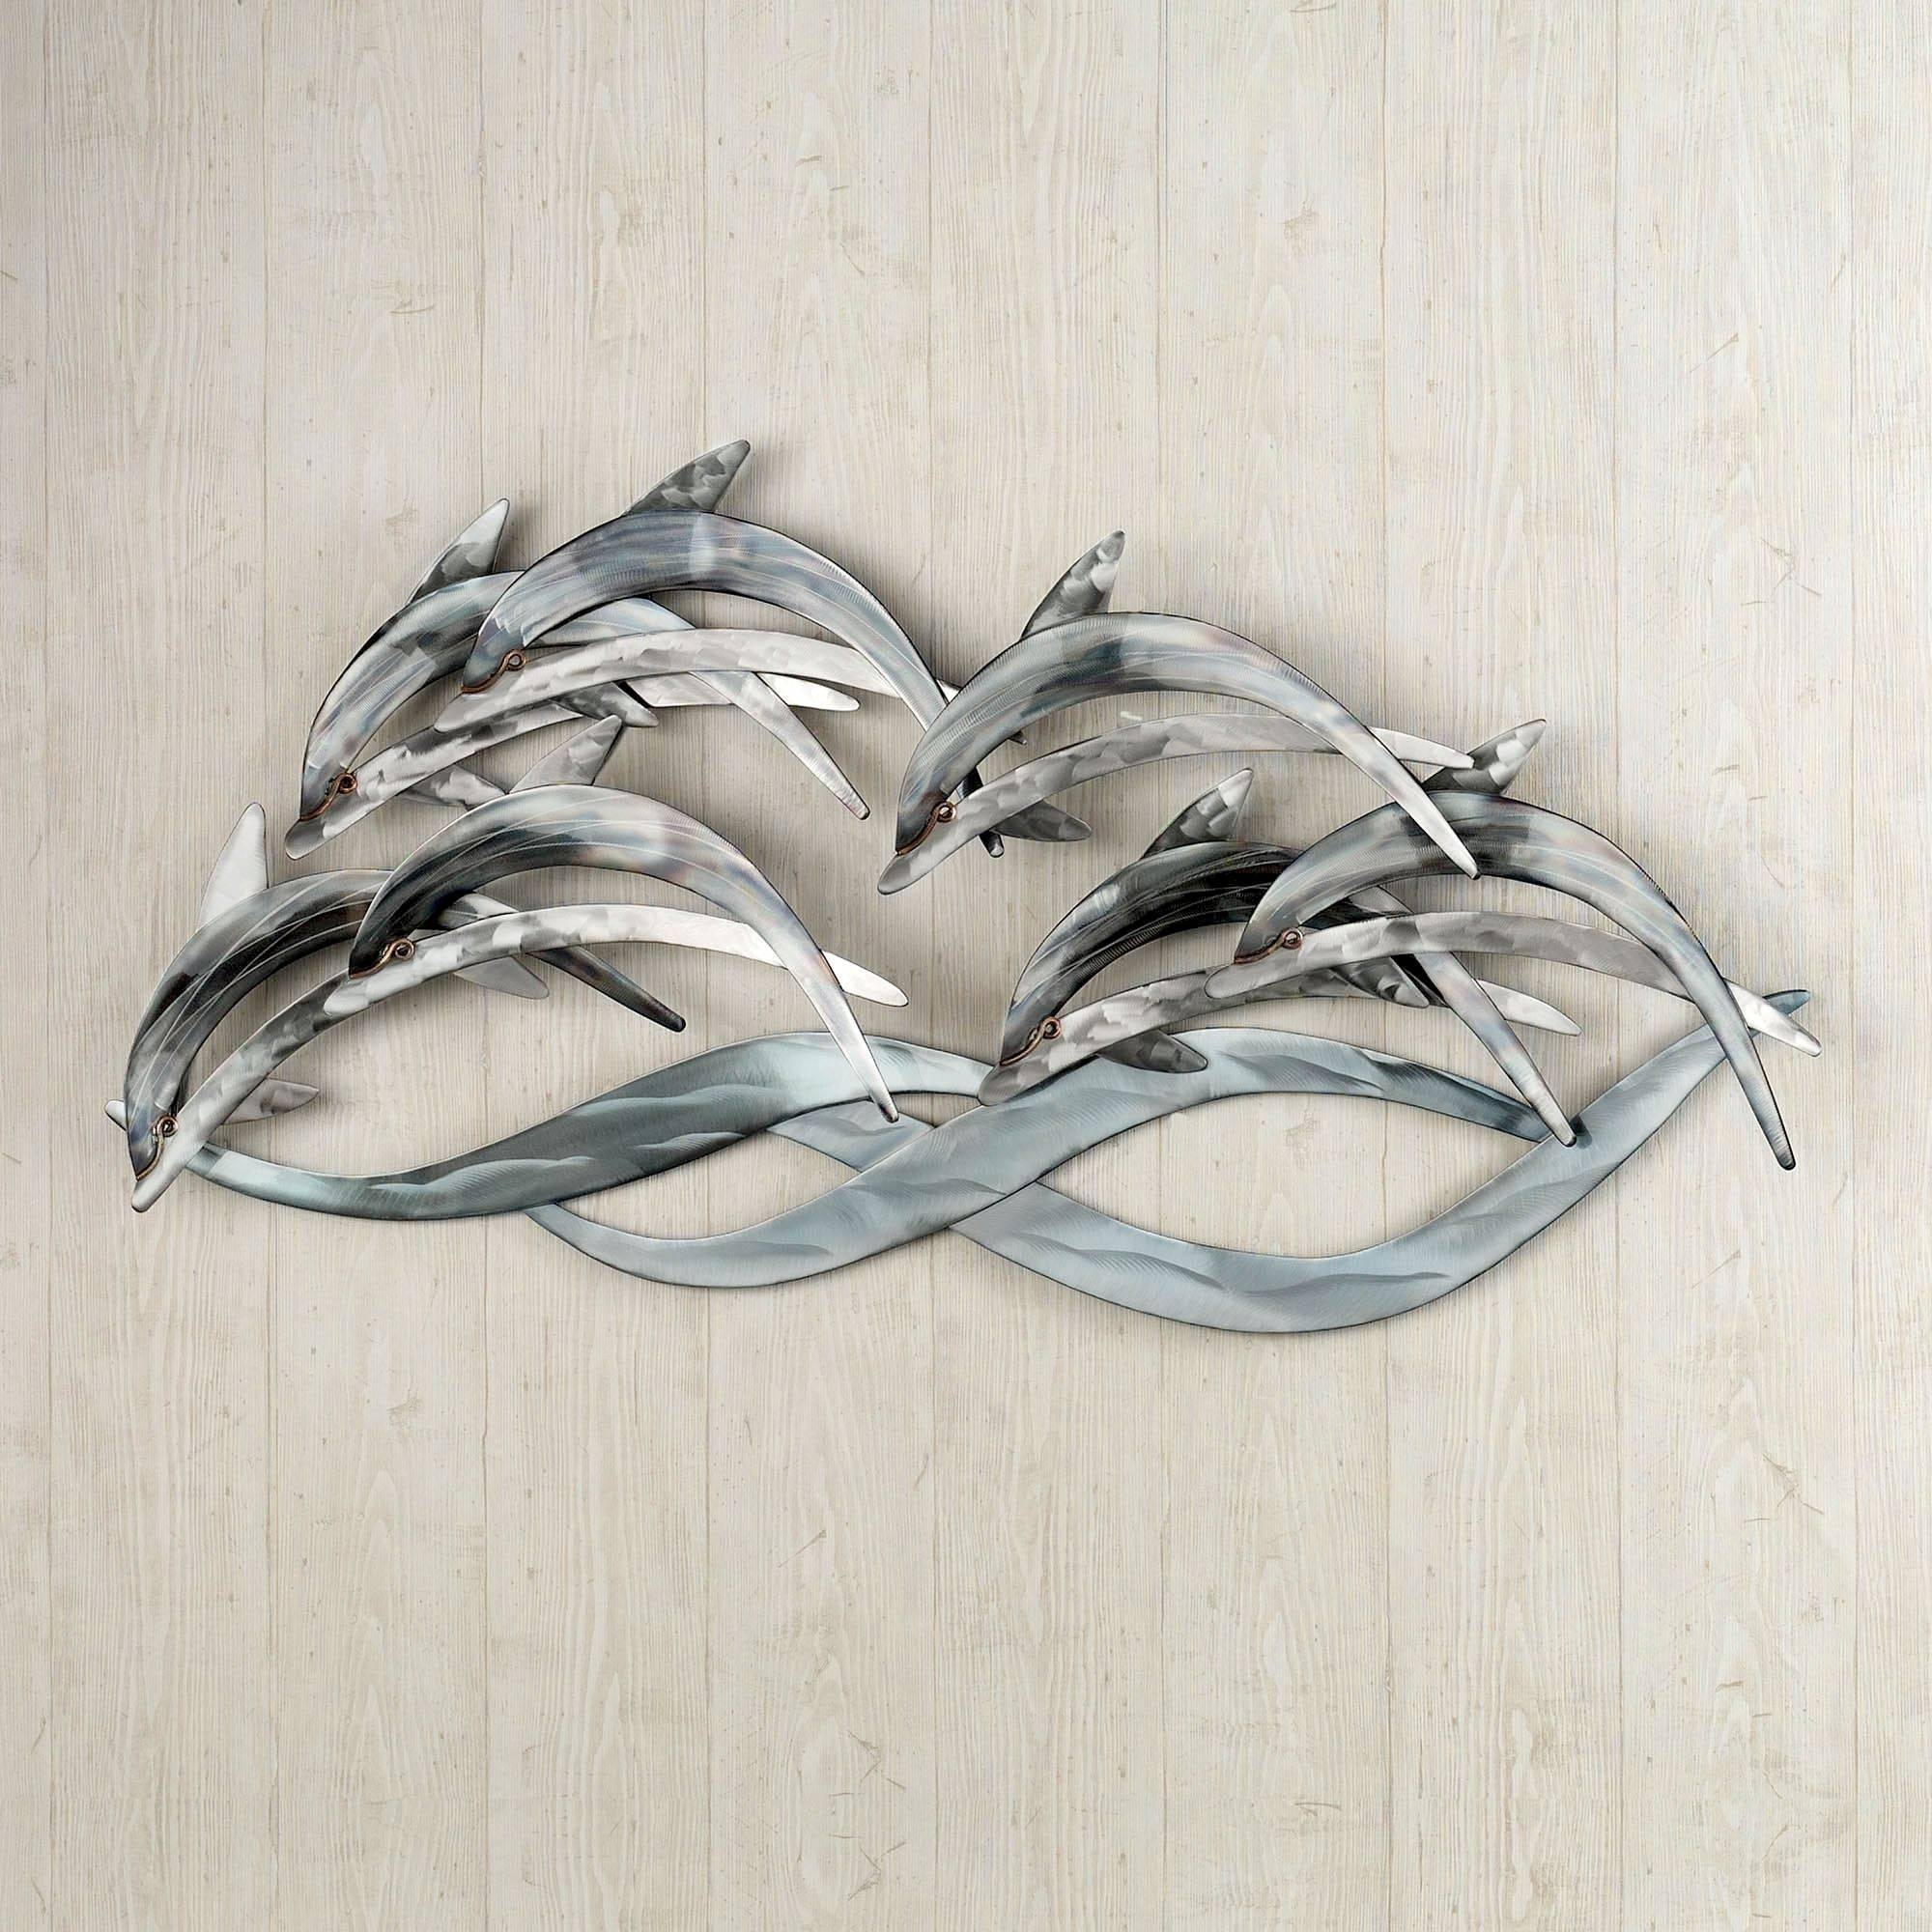 Wave Dancers Dolphin Stainless Steel Wall Sculpture Pertaining To Recent Metal animal Wall Art (View 18 of 20)